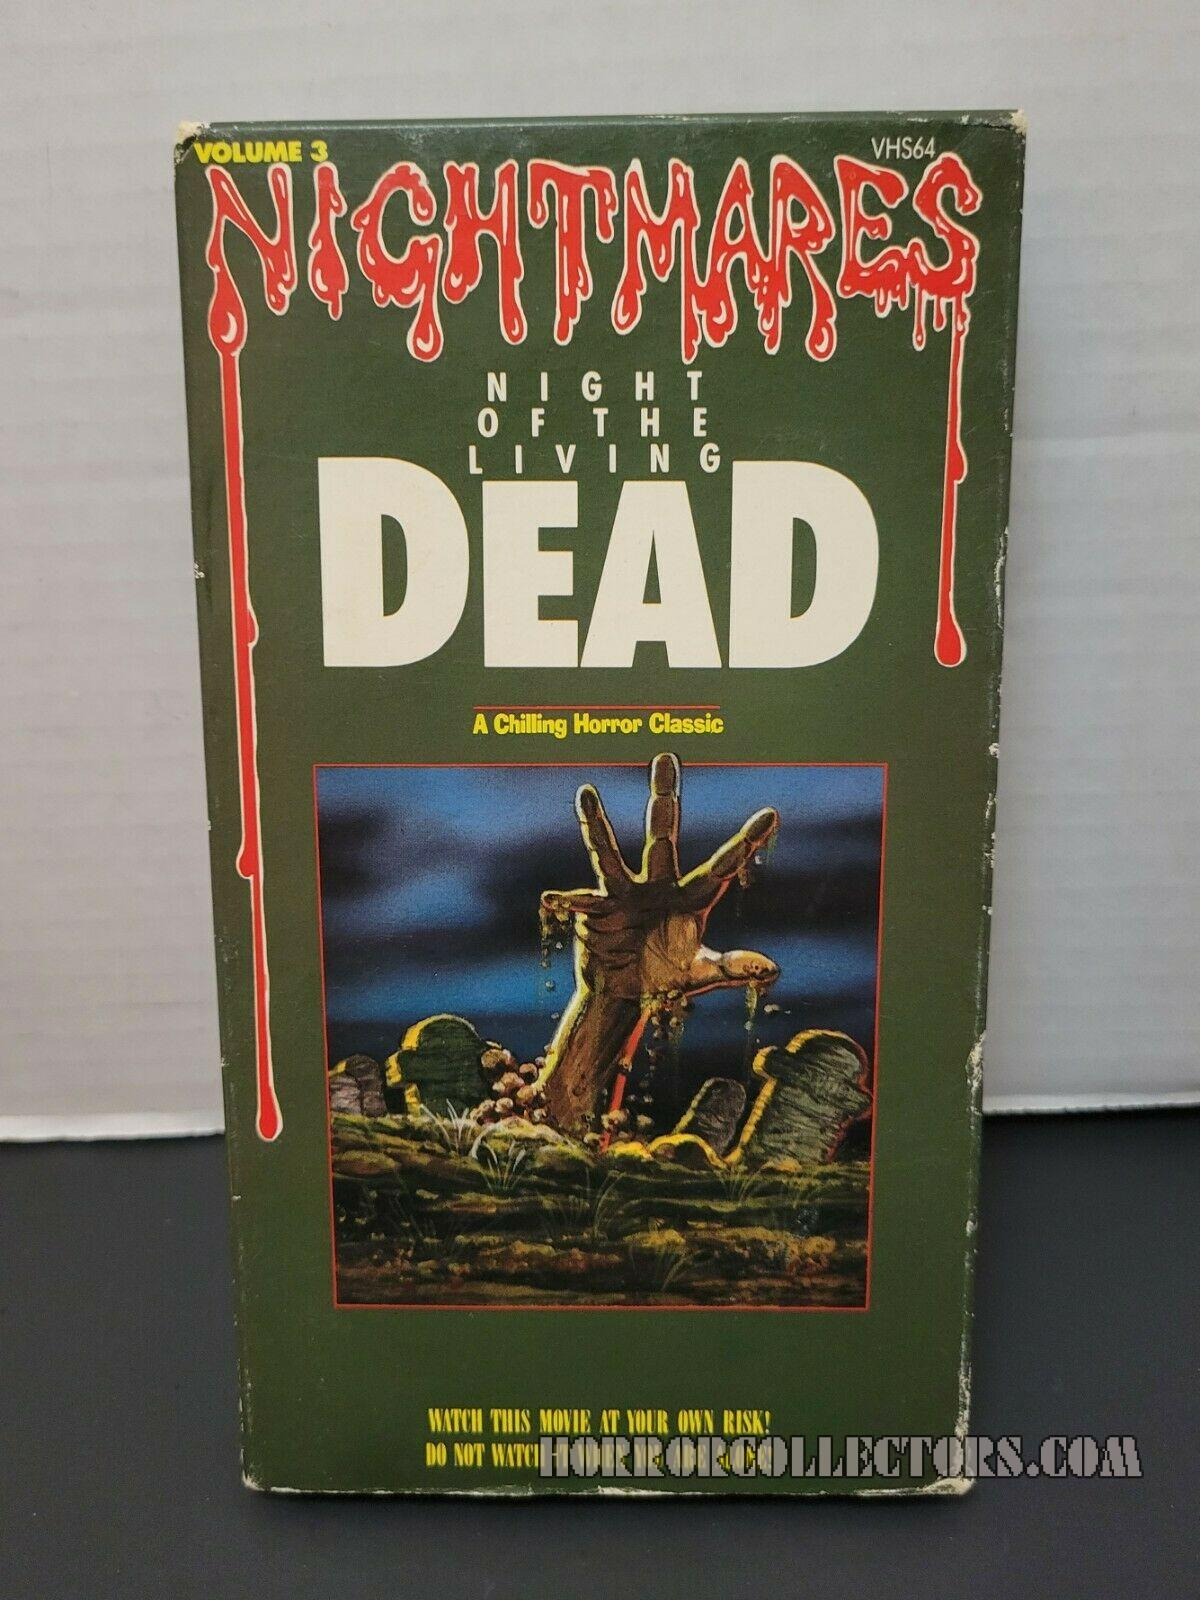 Night of the Living Dead – Parade Video Nightmares Series Volume 3